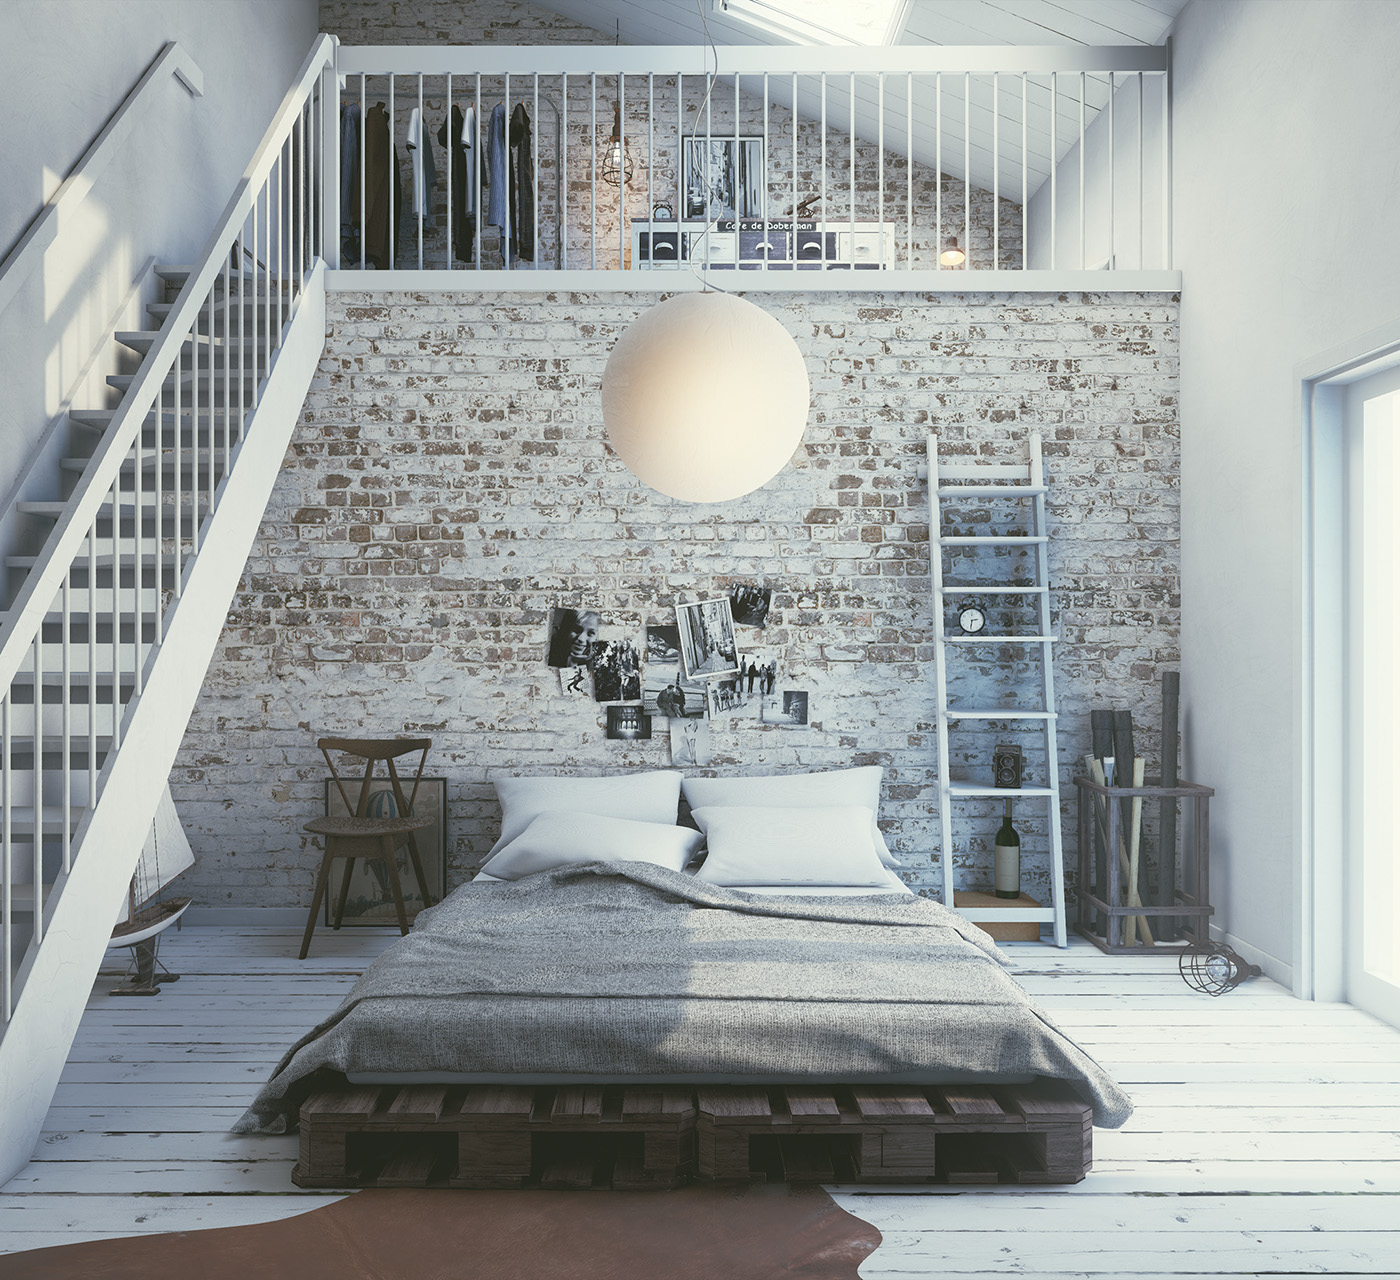 Scandinavian interior unreal engine 4 animation on behance for Unreal engine 4 architecture